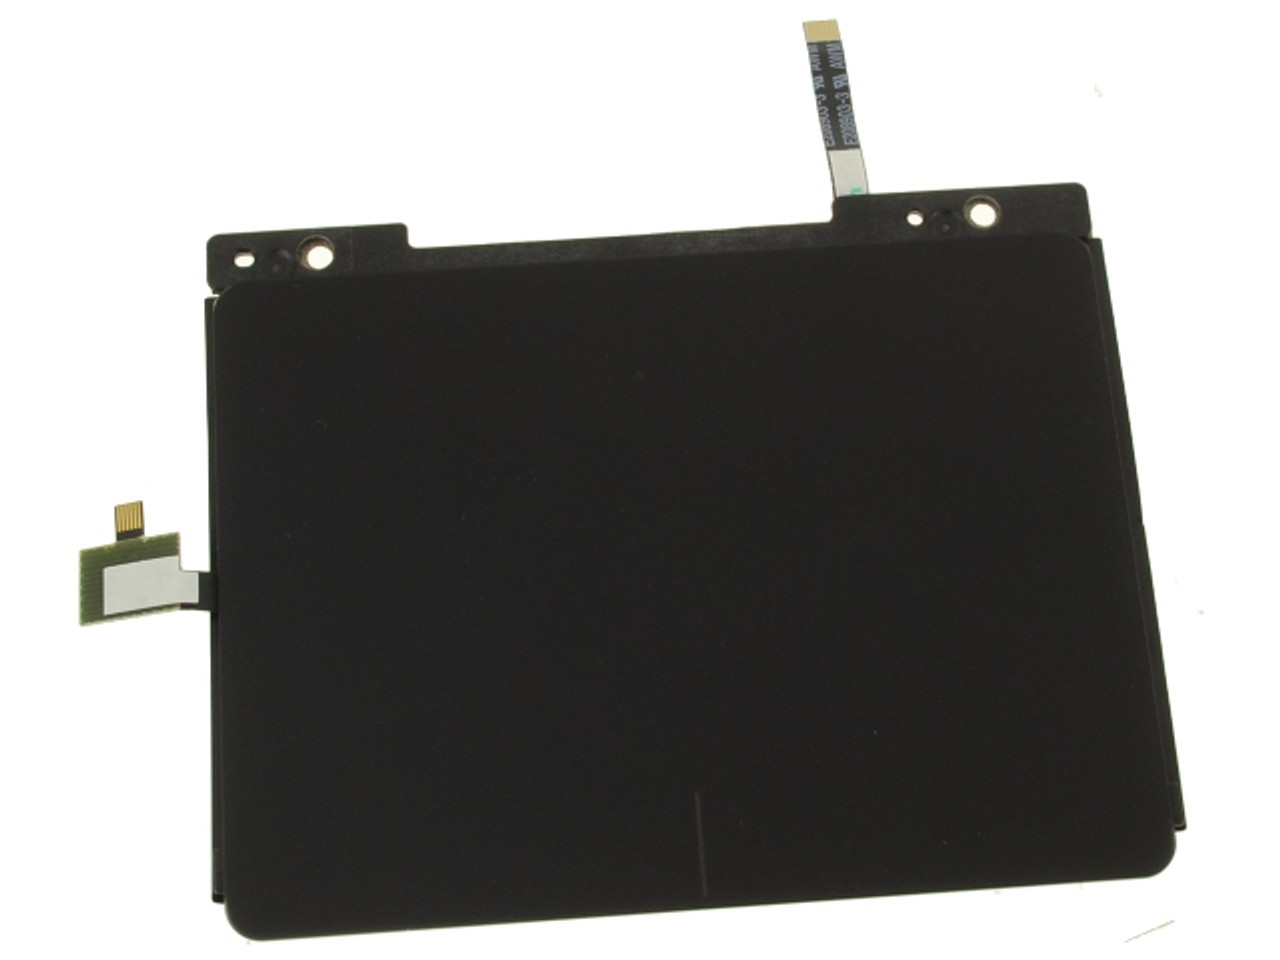 Dell XPS 15 (9530) Touchpad Sensor Assembly w/ cable - HWCP0